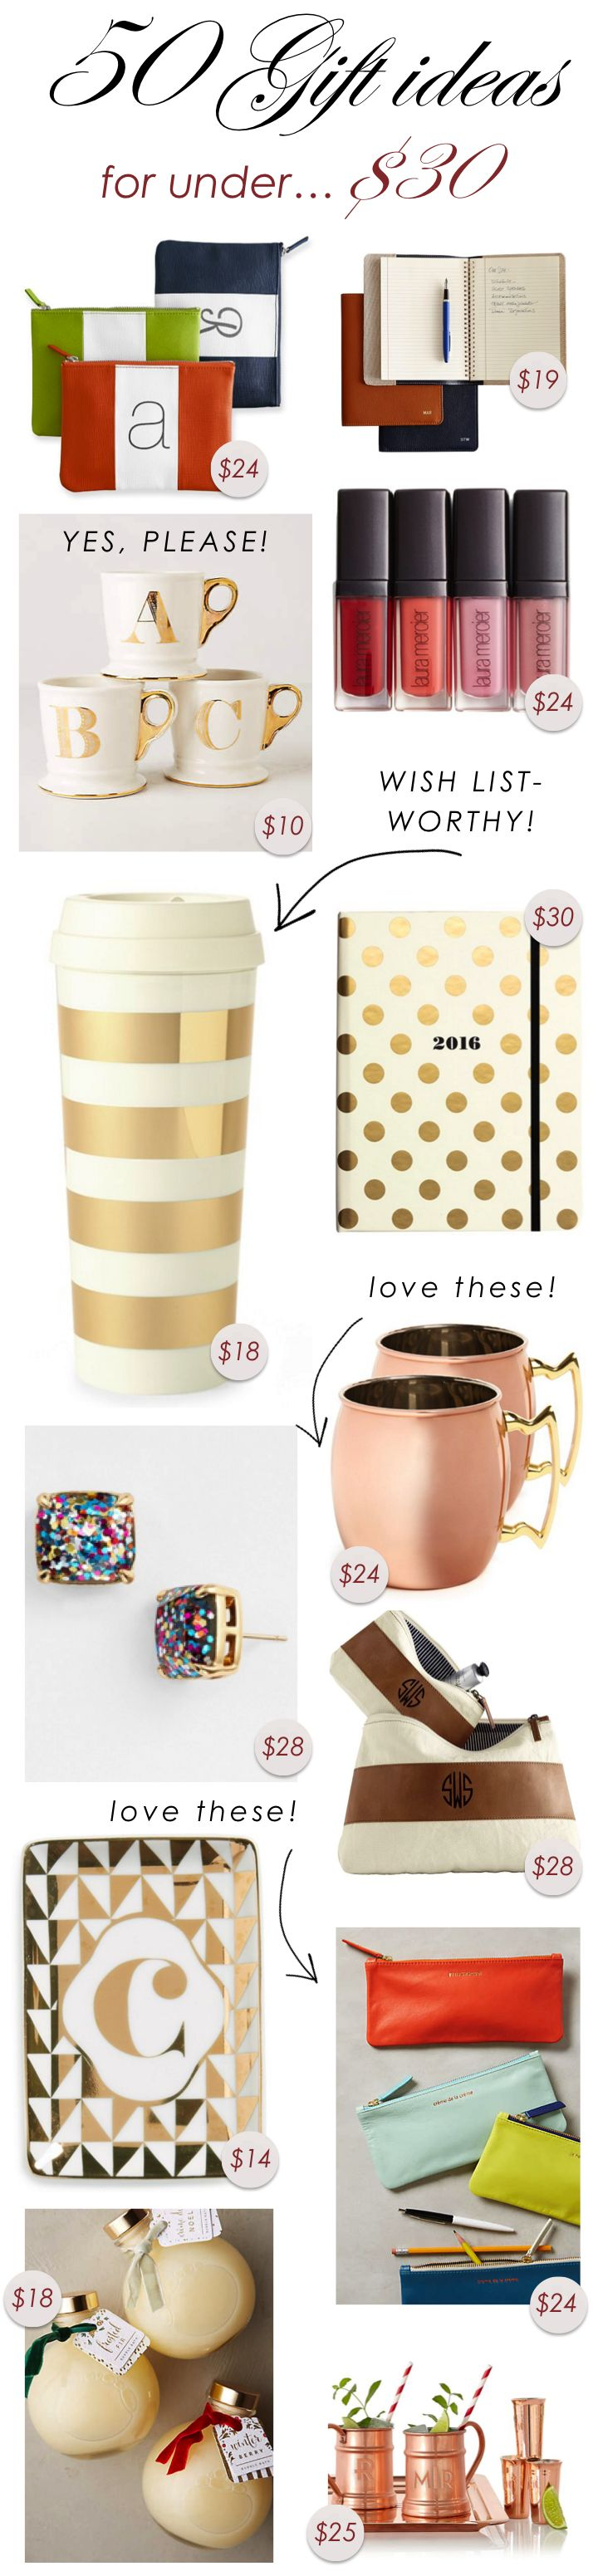 50 Gift Ideas for Under $30 http://www.theperfectpalette.com/2014/12/50-gift-ideas-for-under-30.html